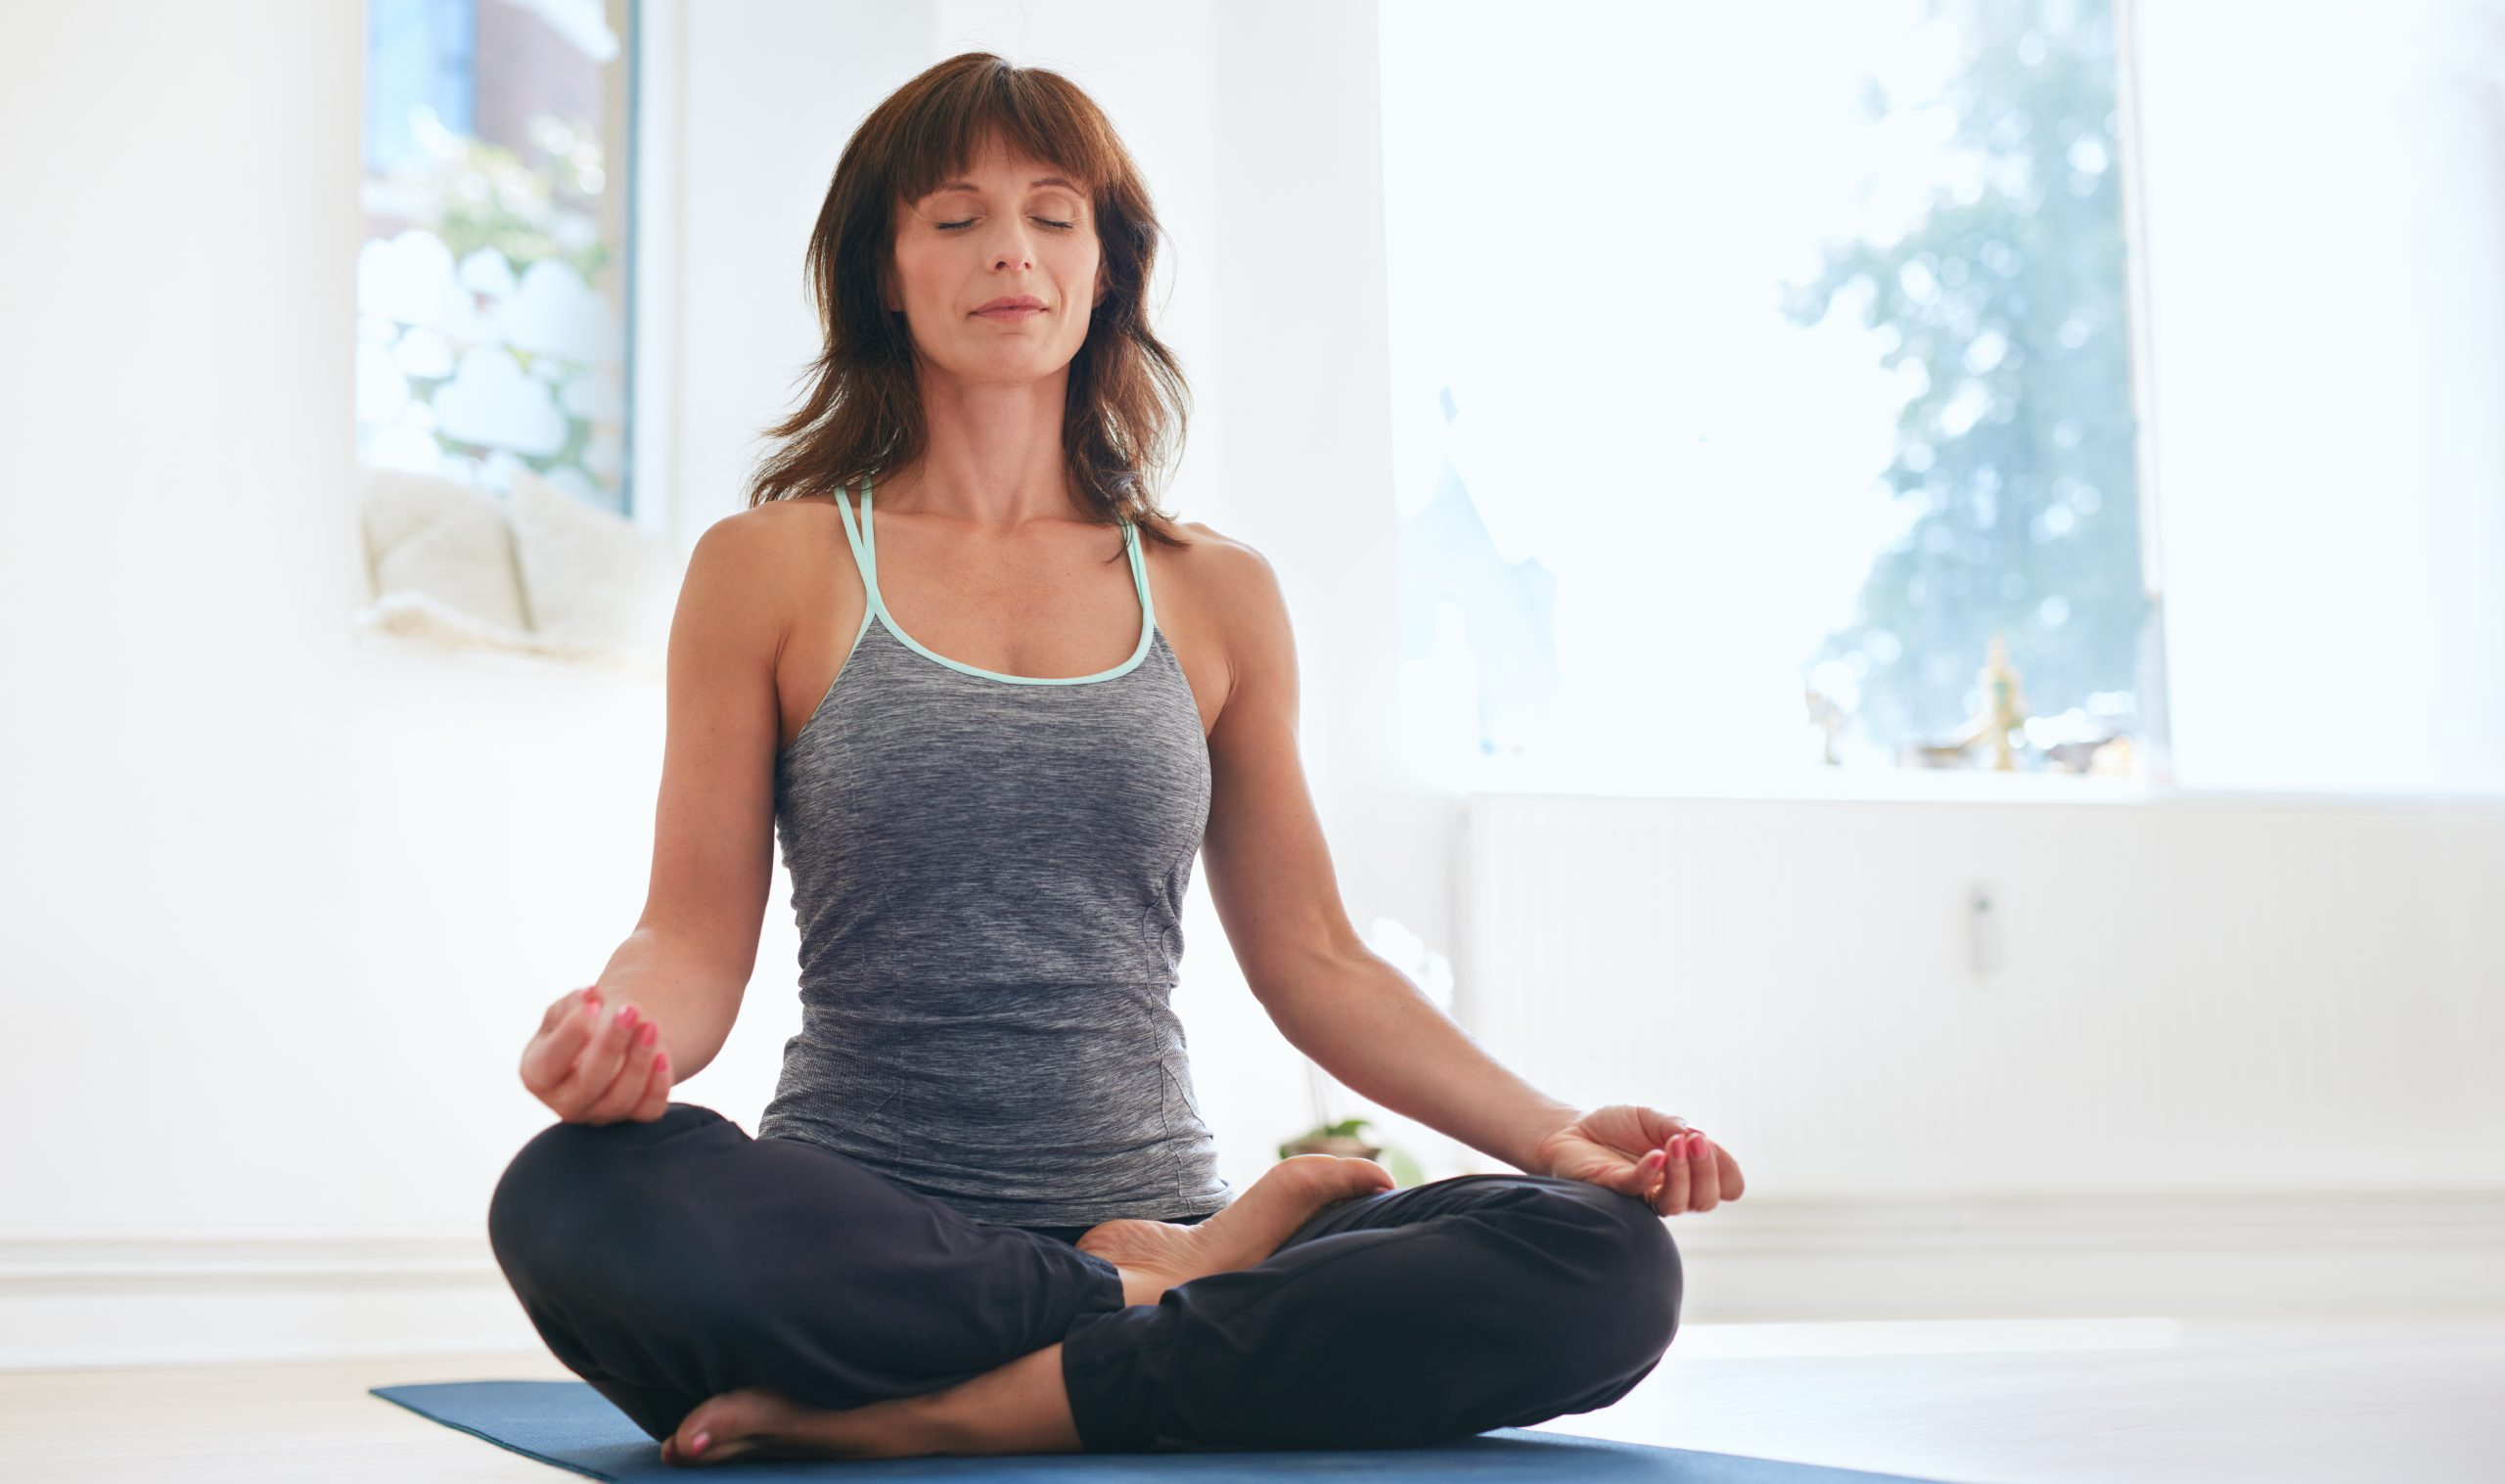 Simple breathing technique for menopause symptoms